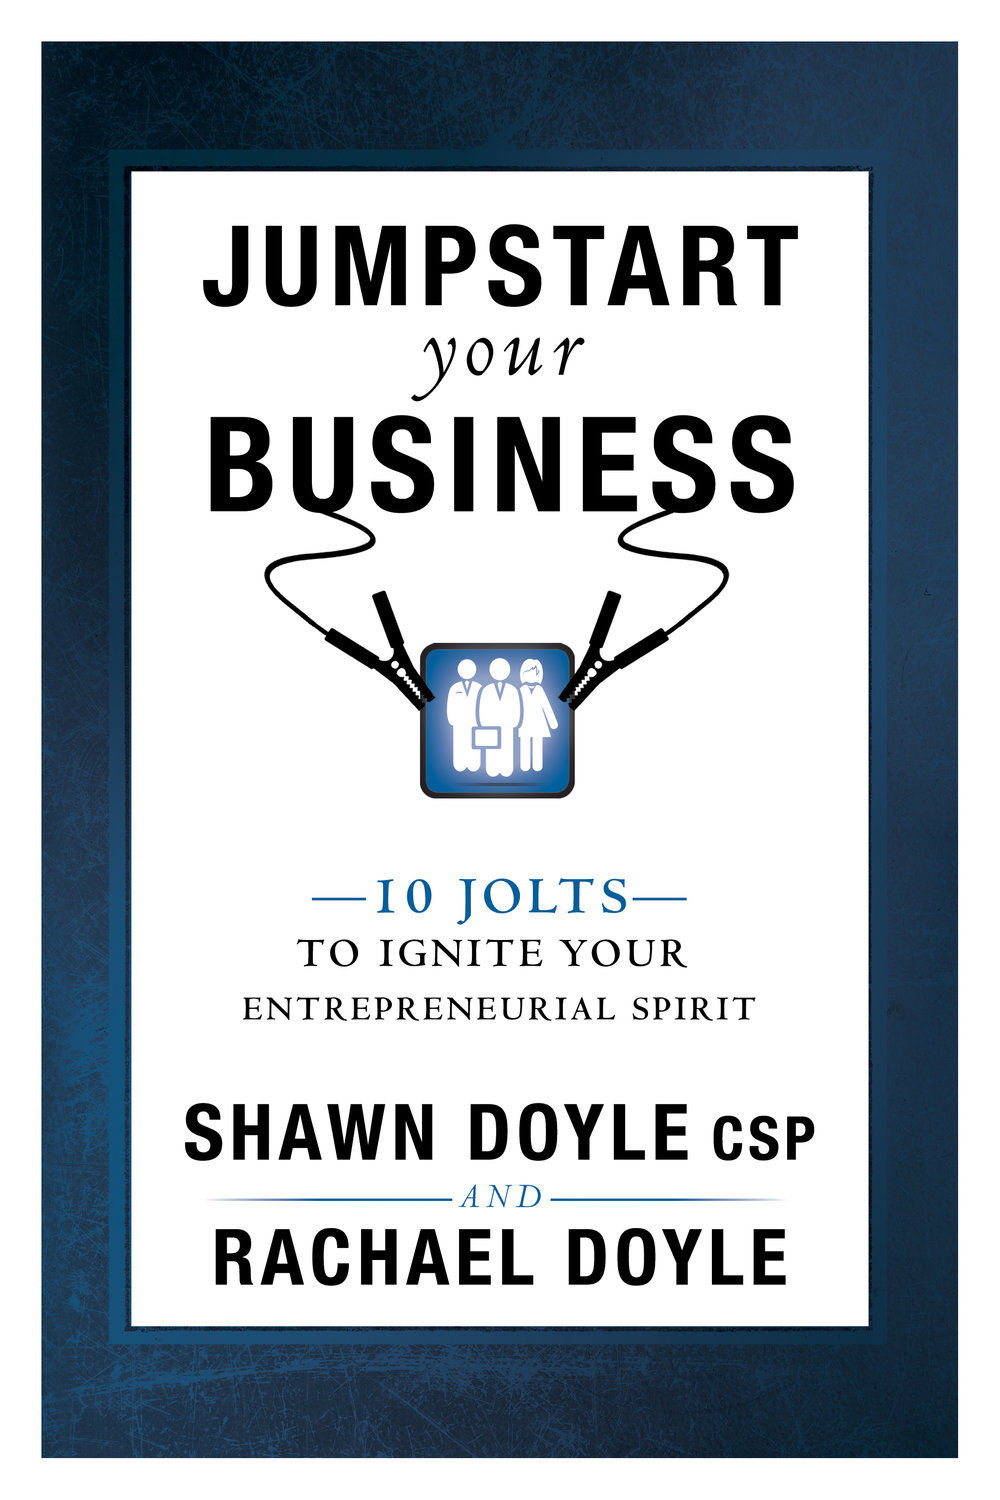 Jumpstart_Your_Business.jpg